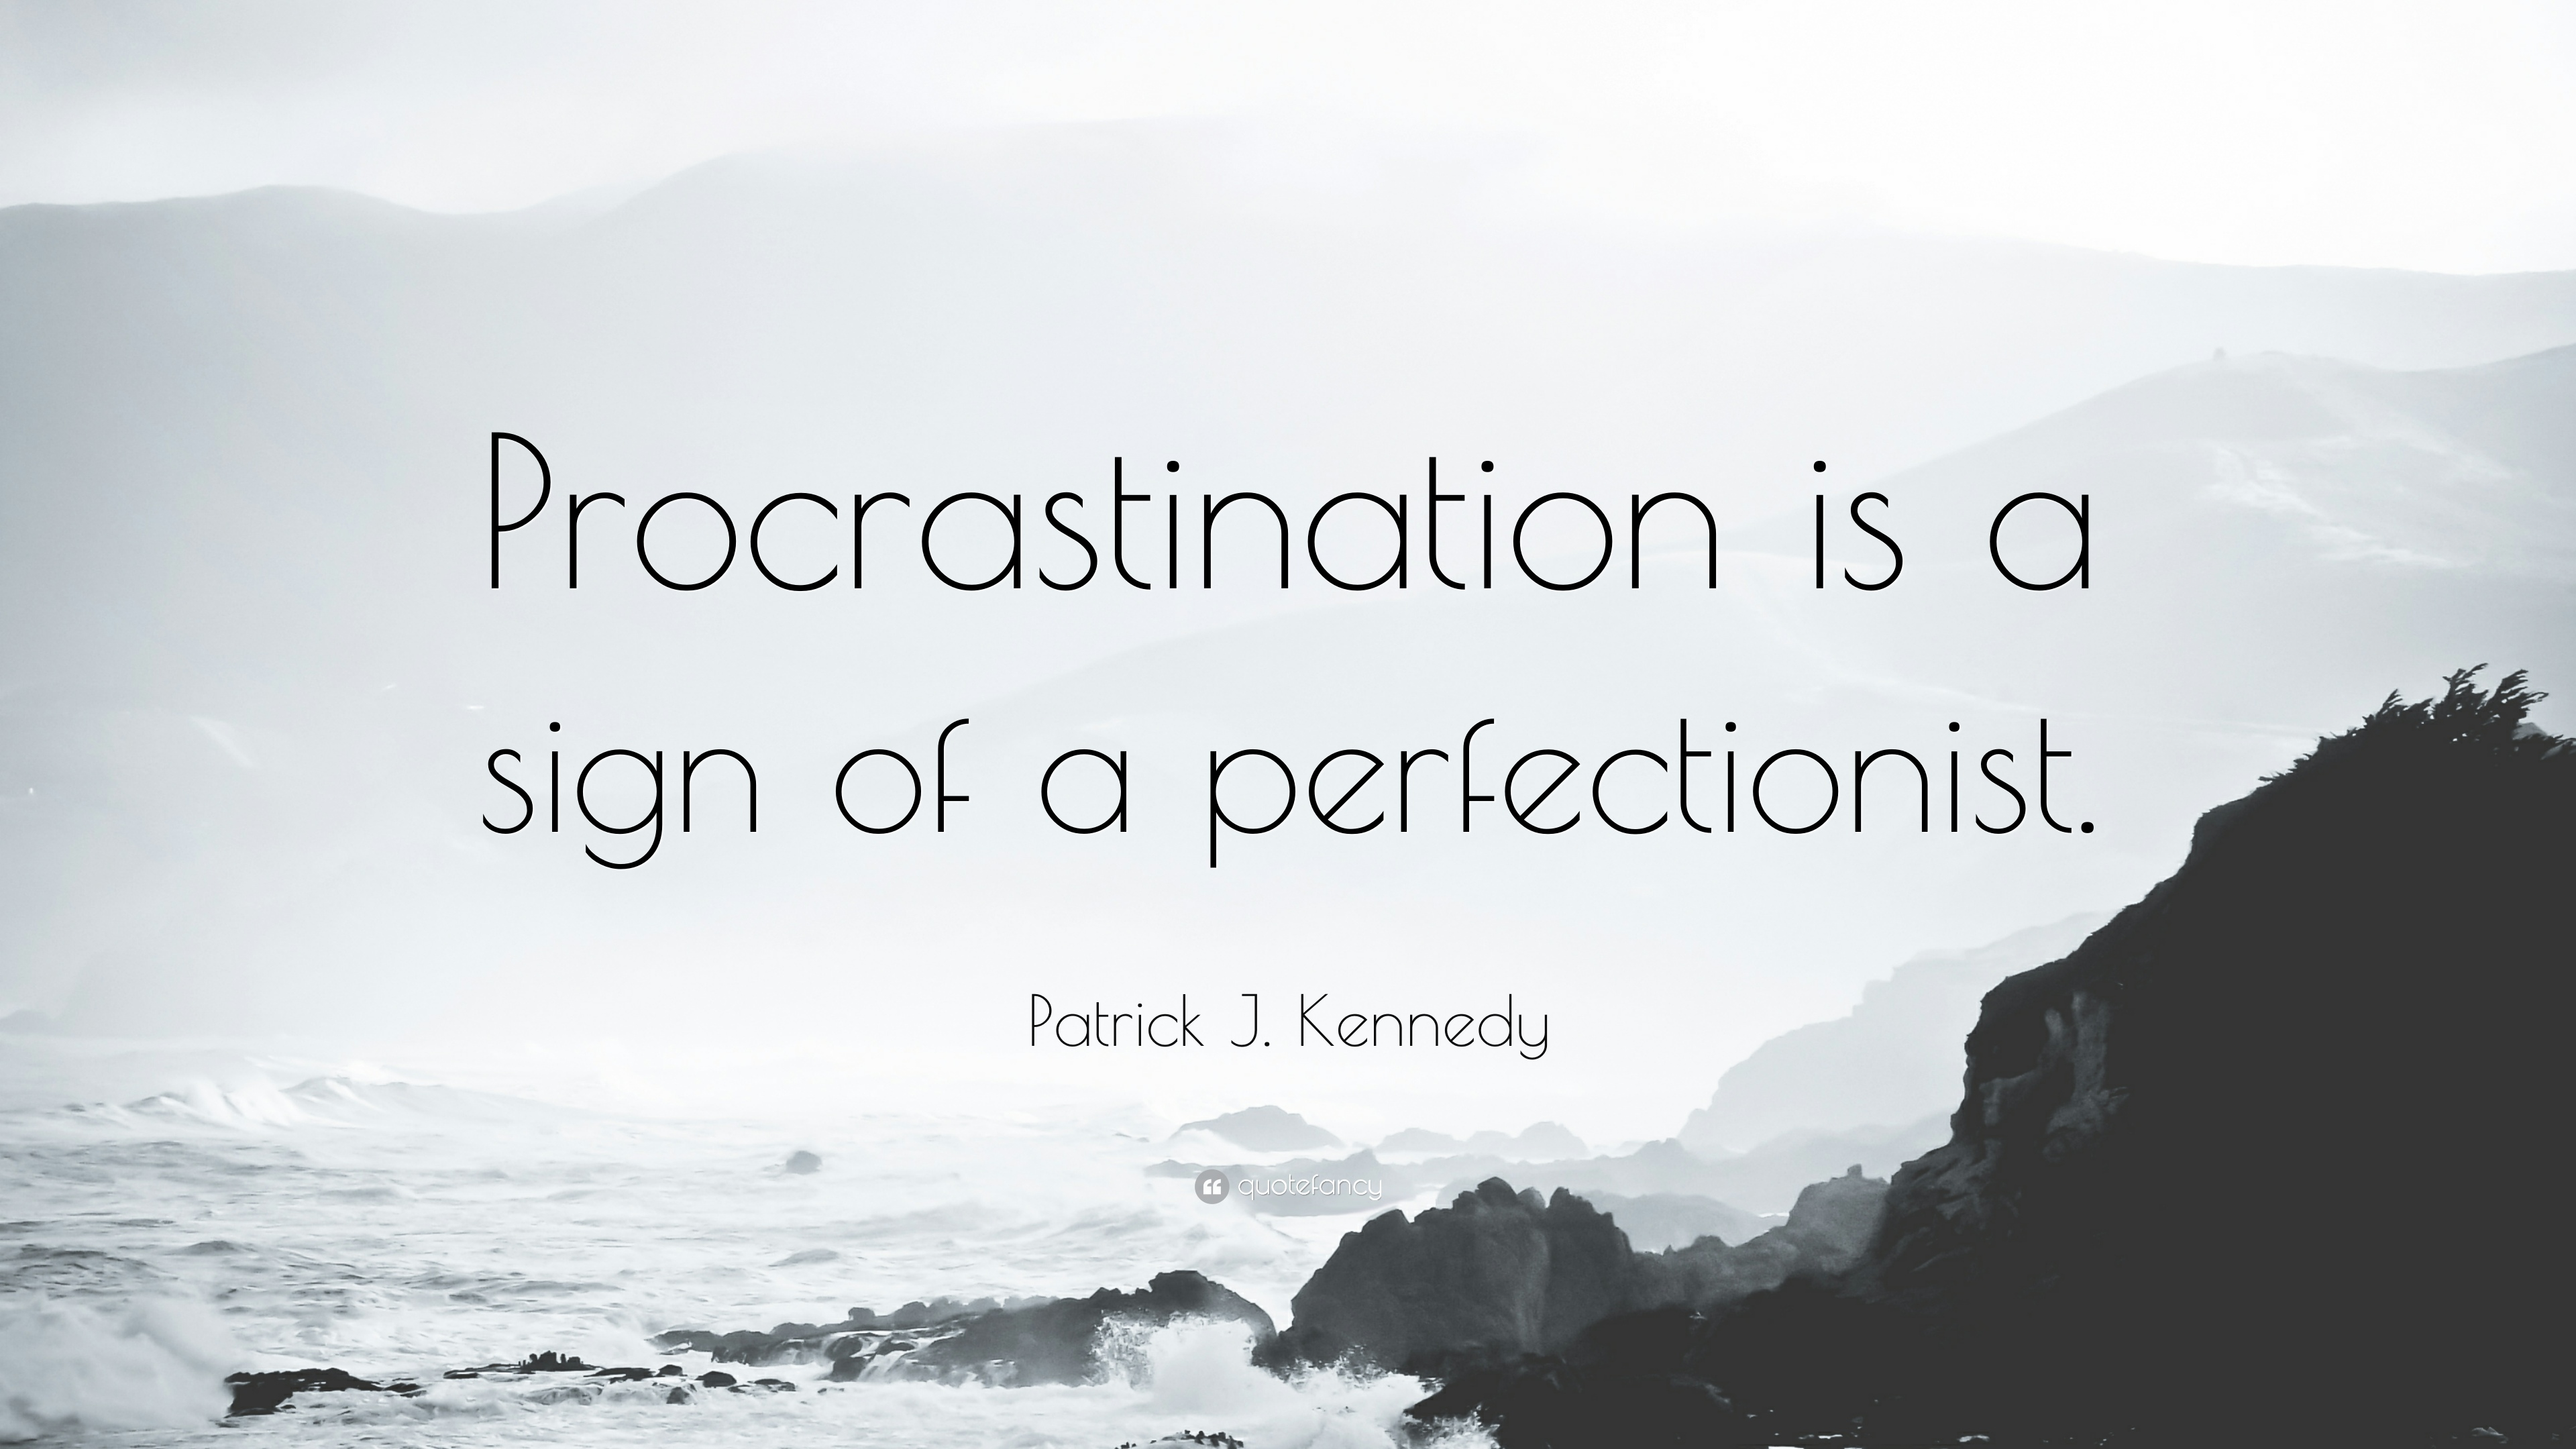 Procrastination Quotes (40 wallpapers) - Quotefancy